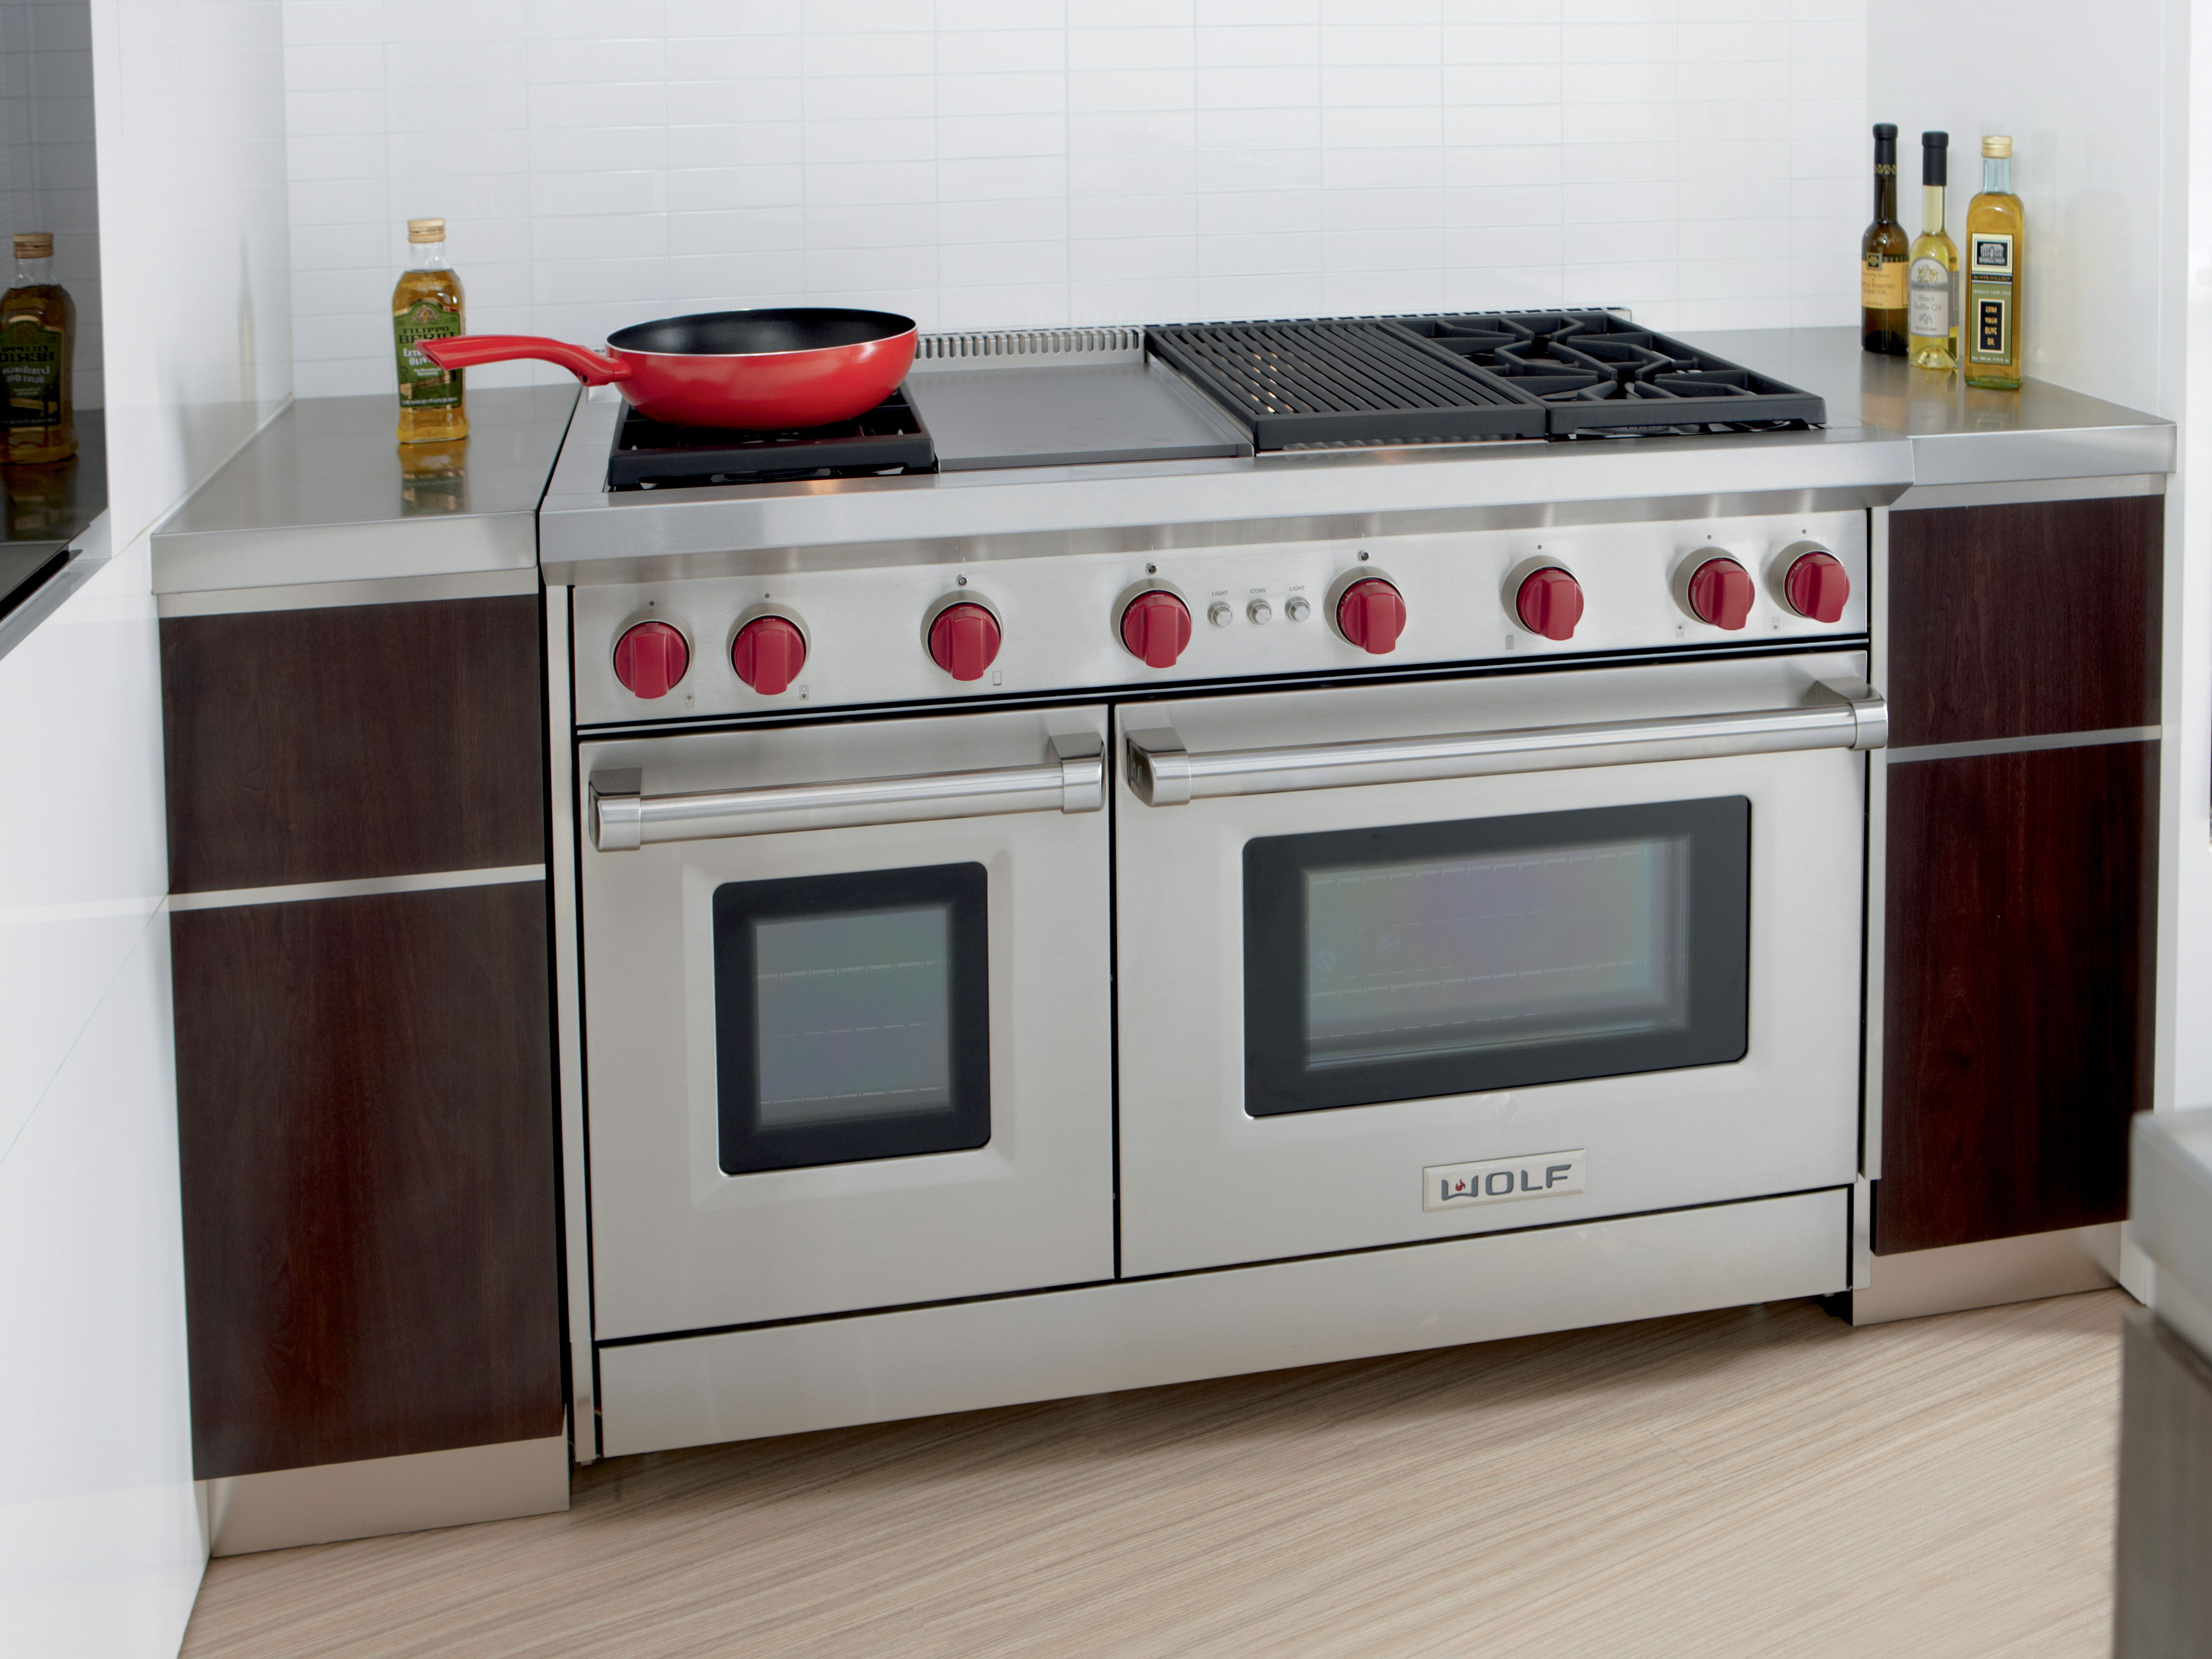 With Dual Stacked Burners That Produce Exceptionally Even Pan Coverage Food Cooks More Evenly Acr Kosher Kitchen Design Luxury Kitchens Top Kitchen Appliances